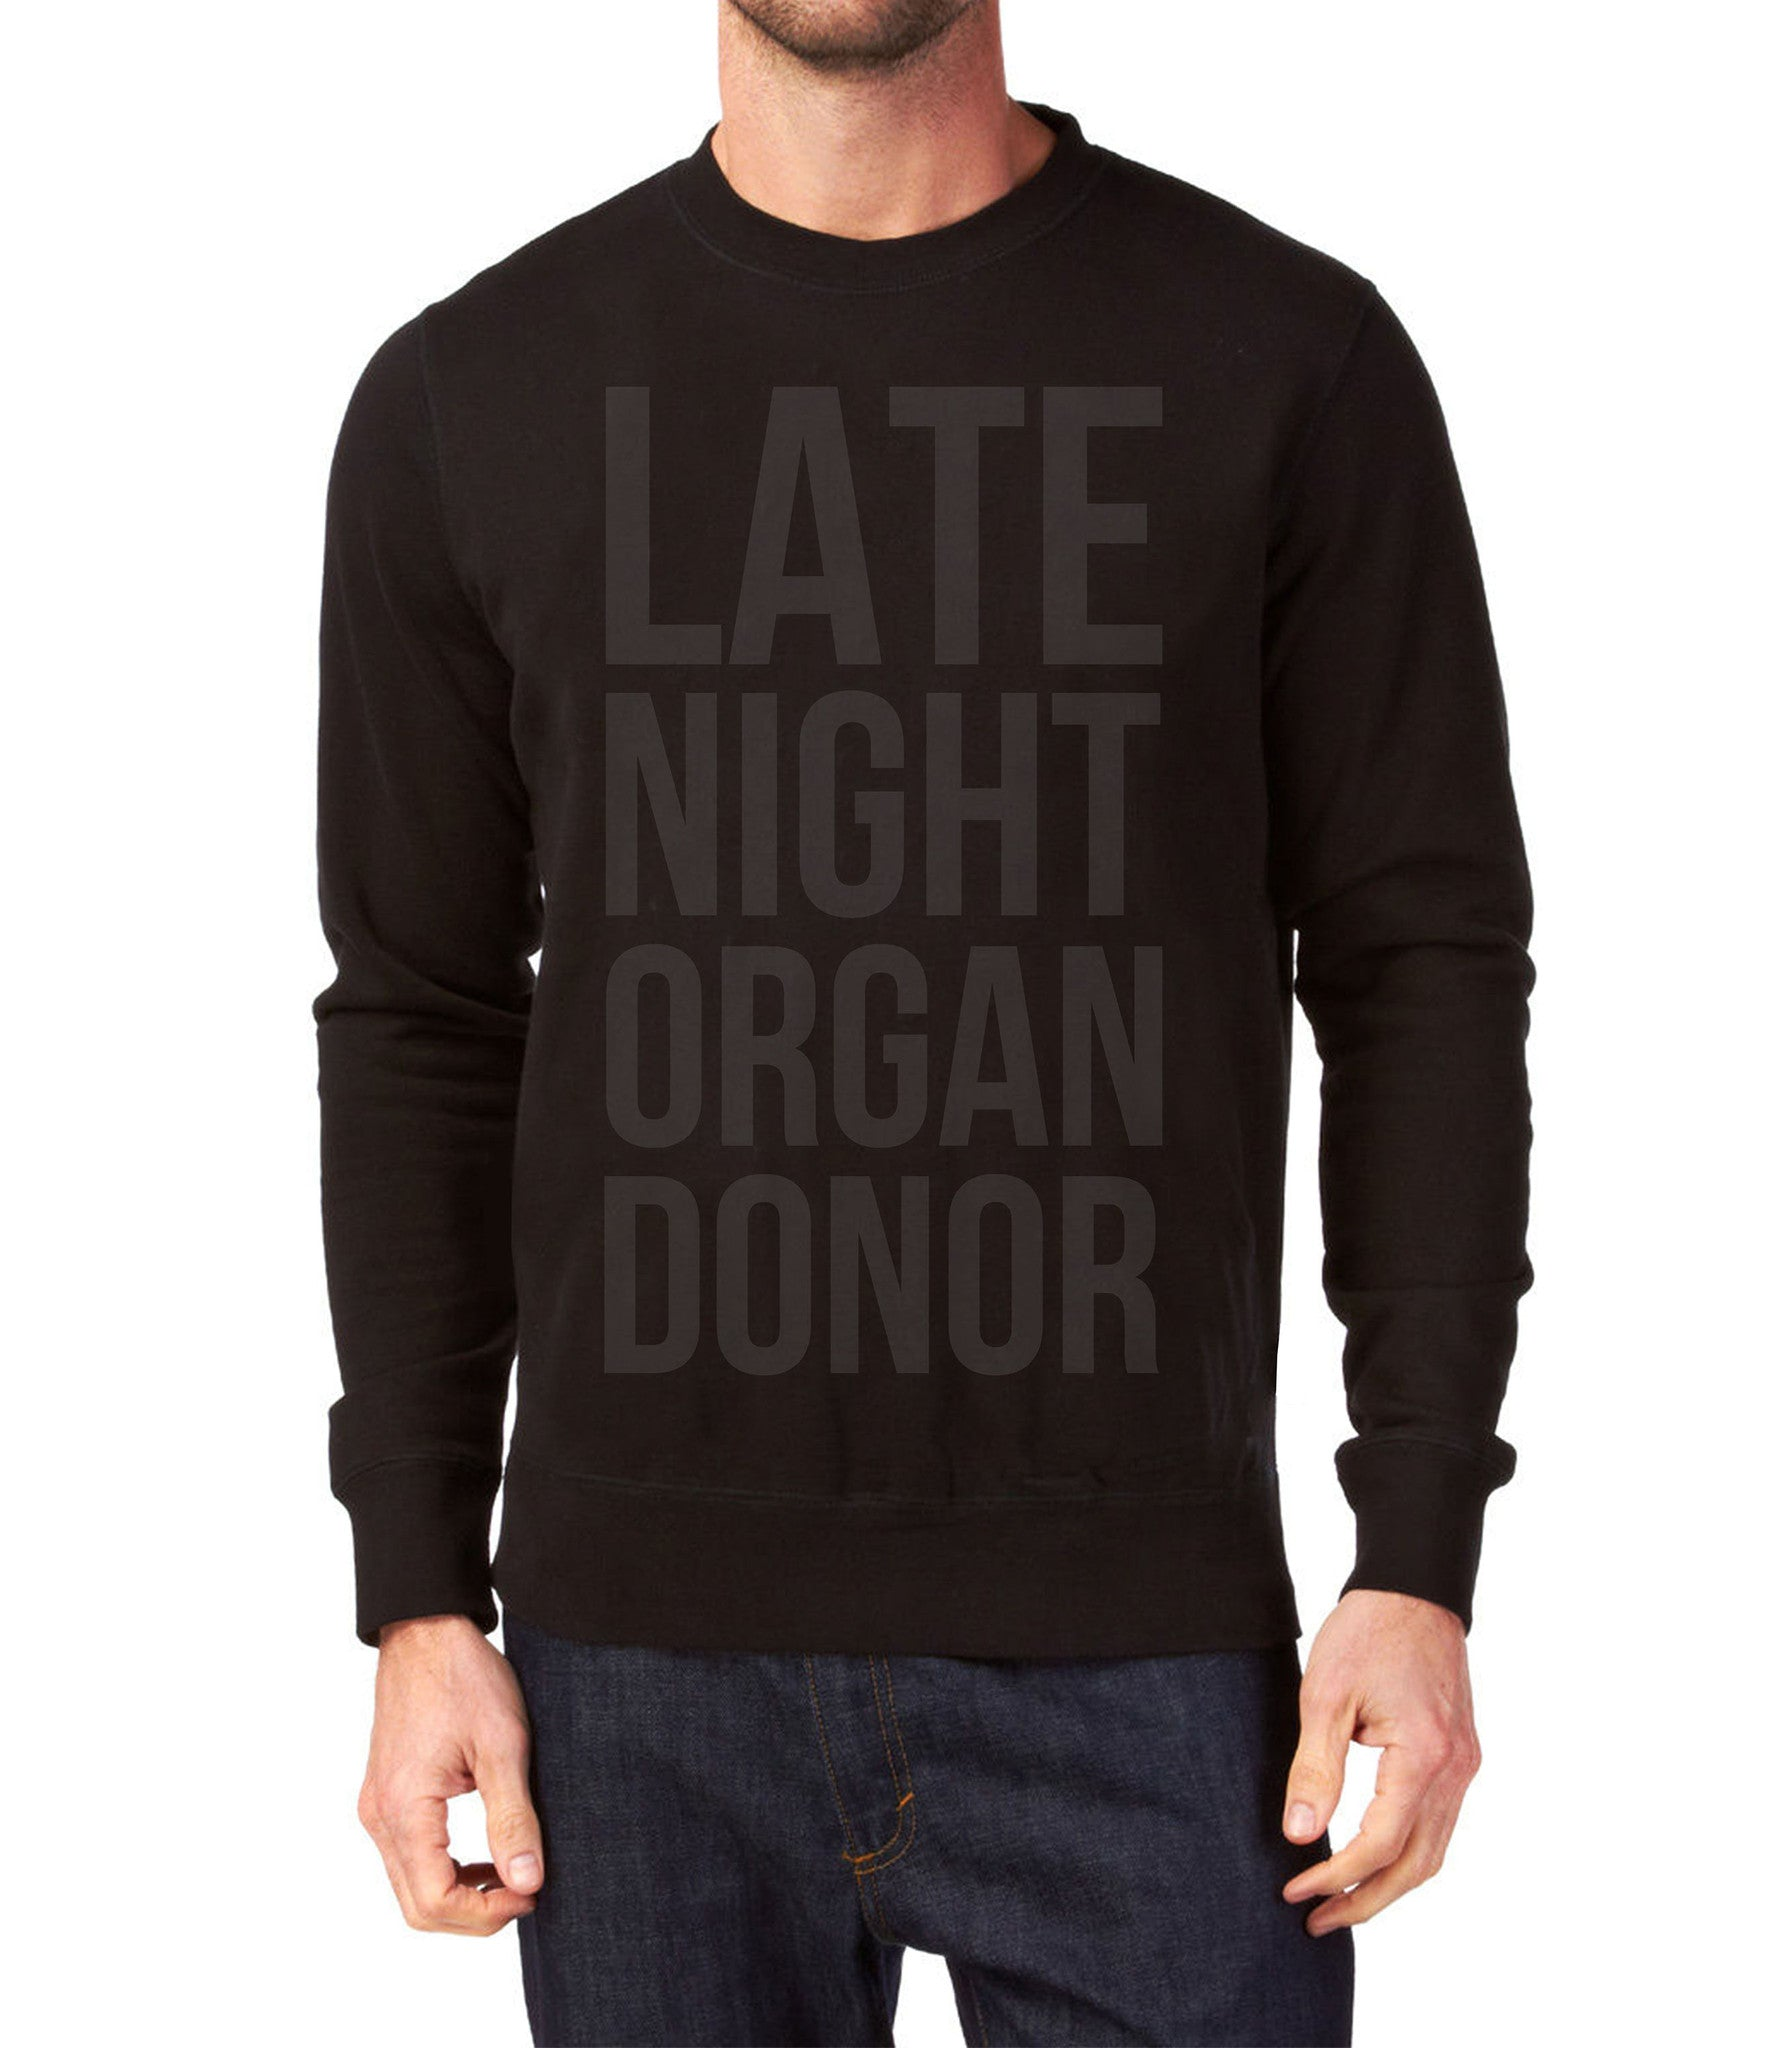 Organize.org Late Night Organ Donor Sweatshirt